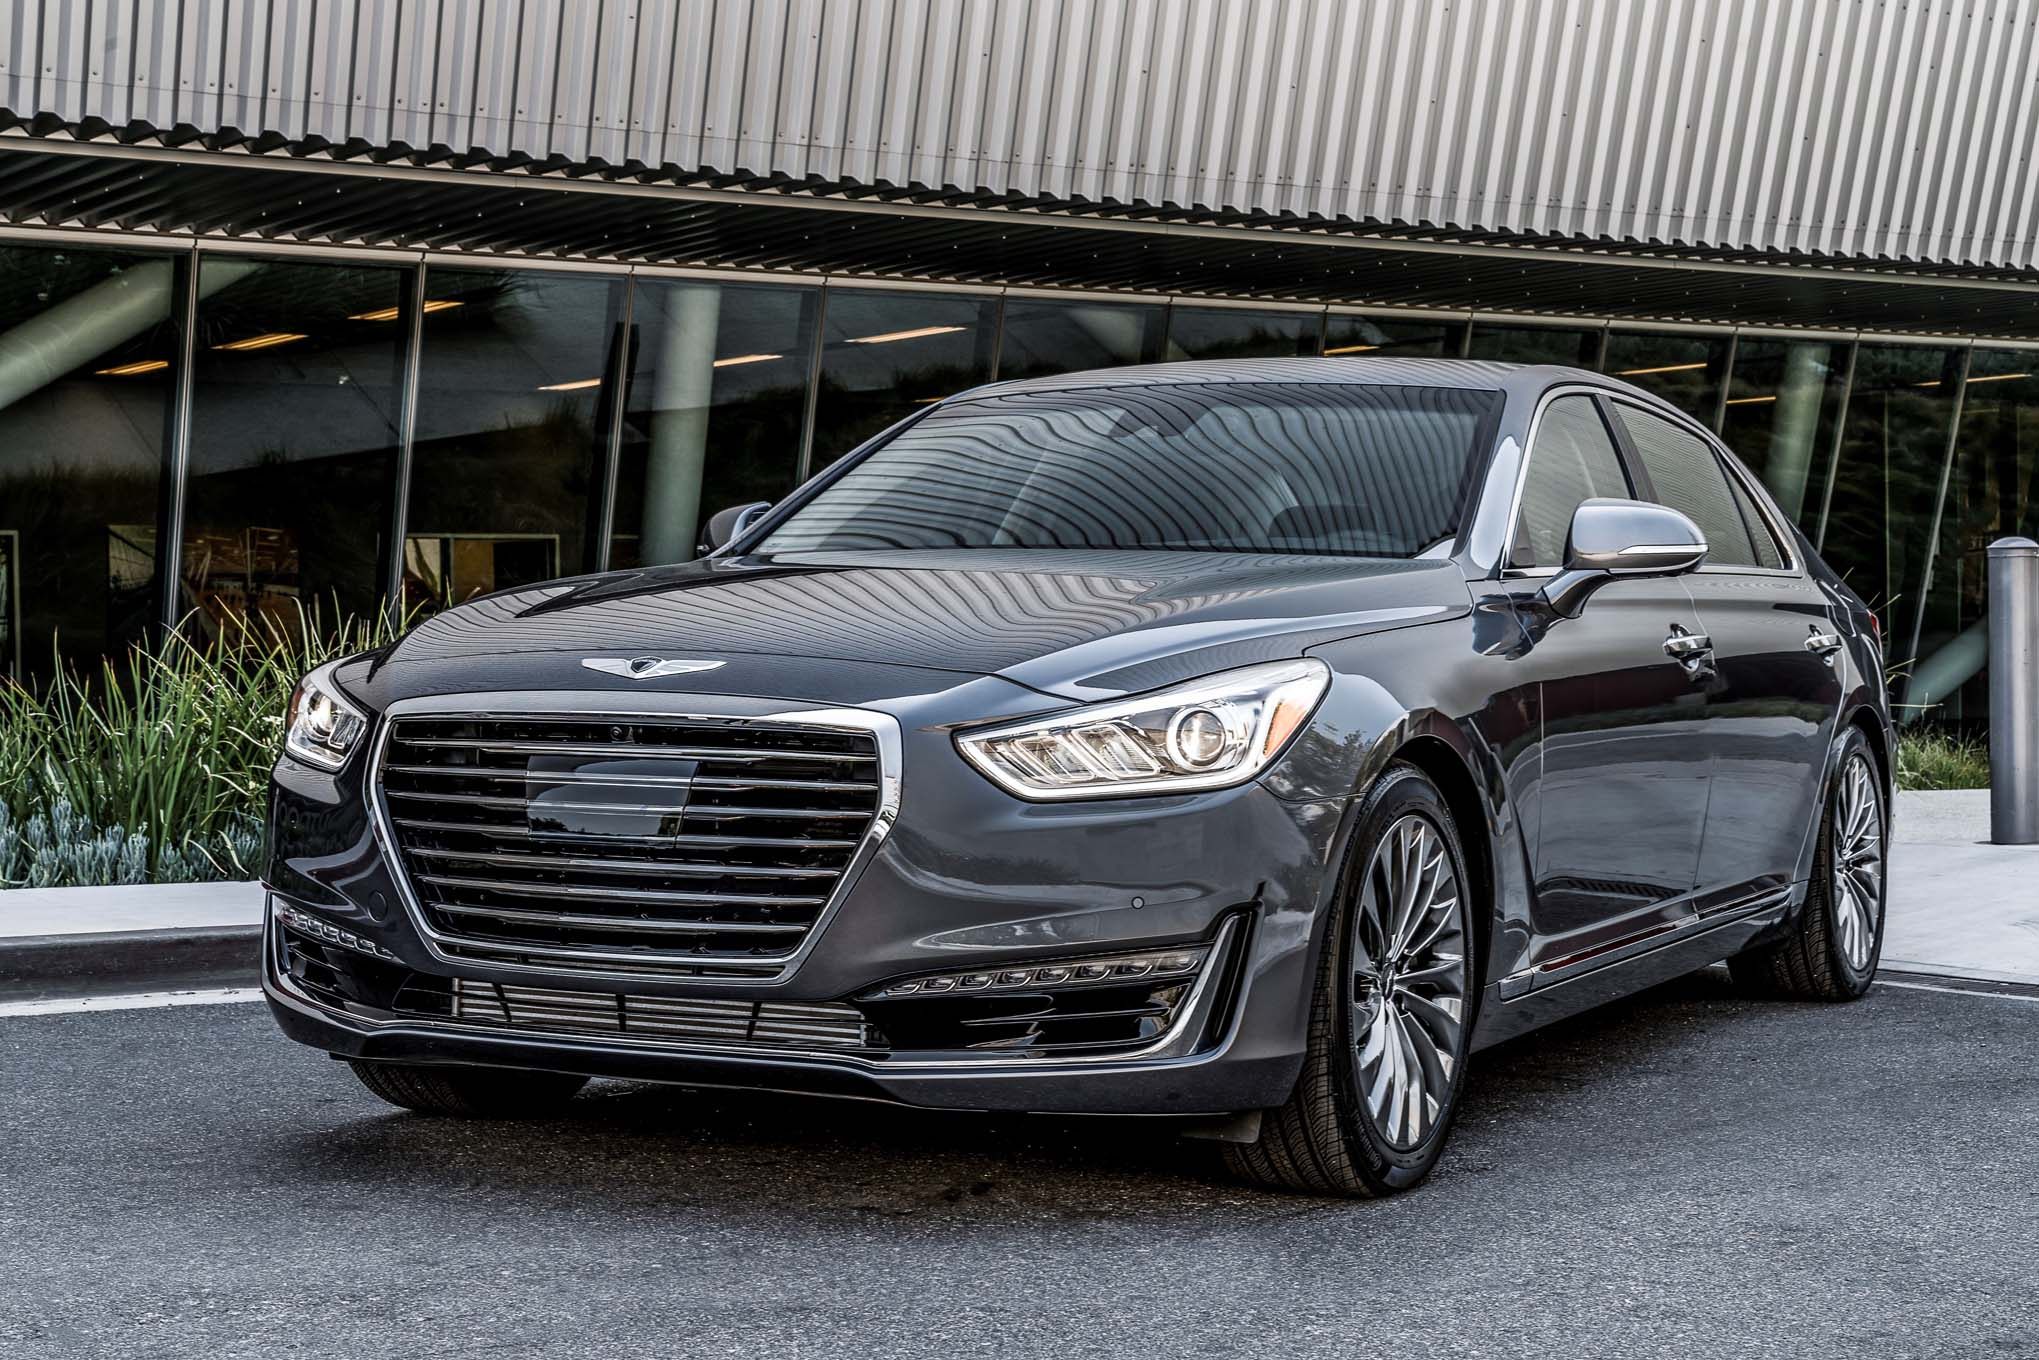 Genesis G90 Full hd wallpapers